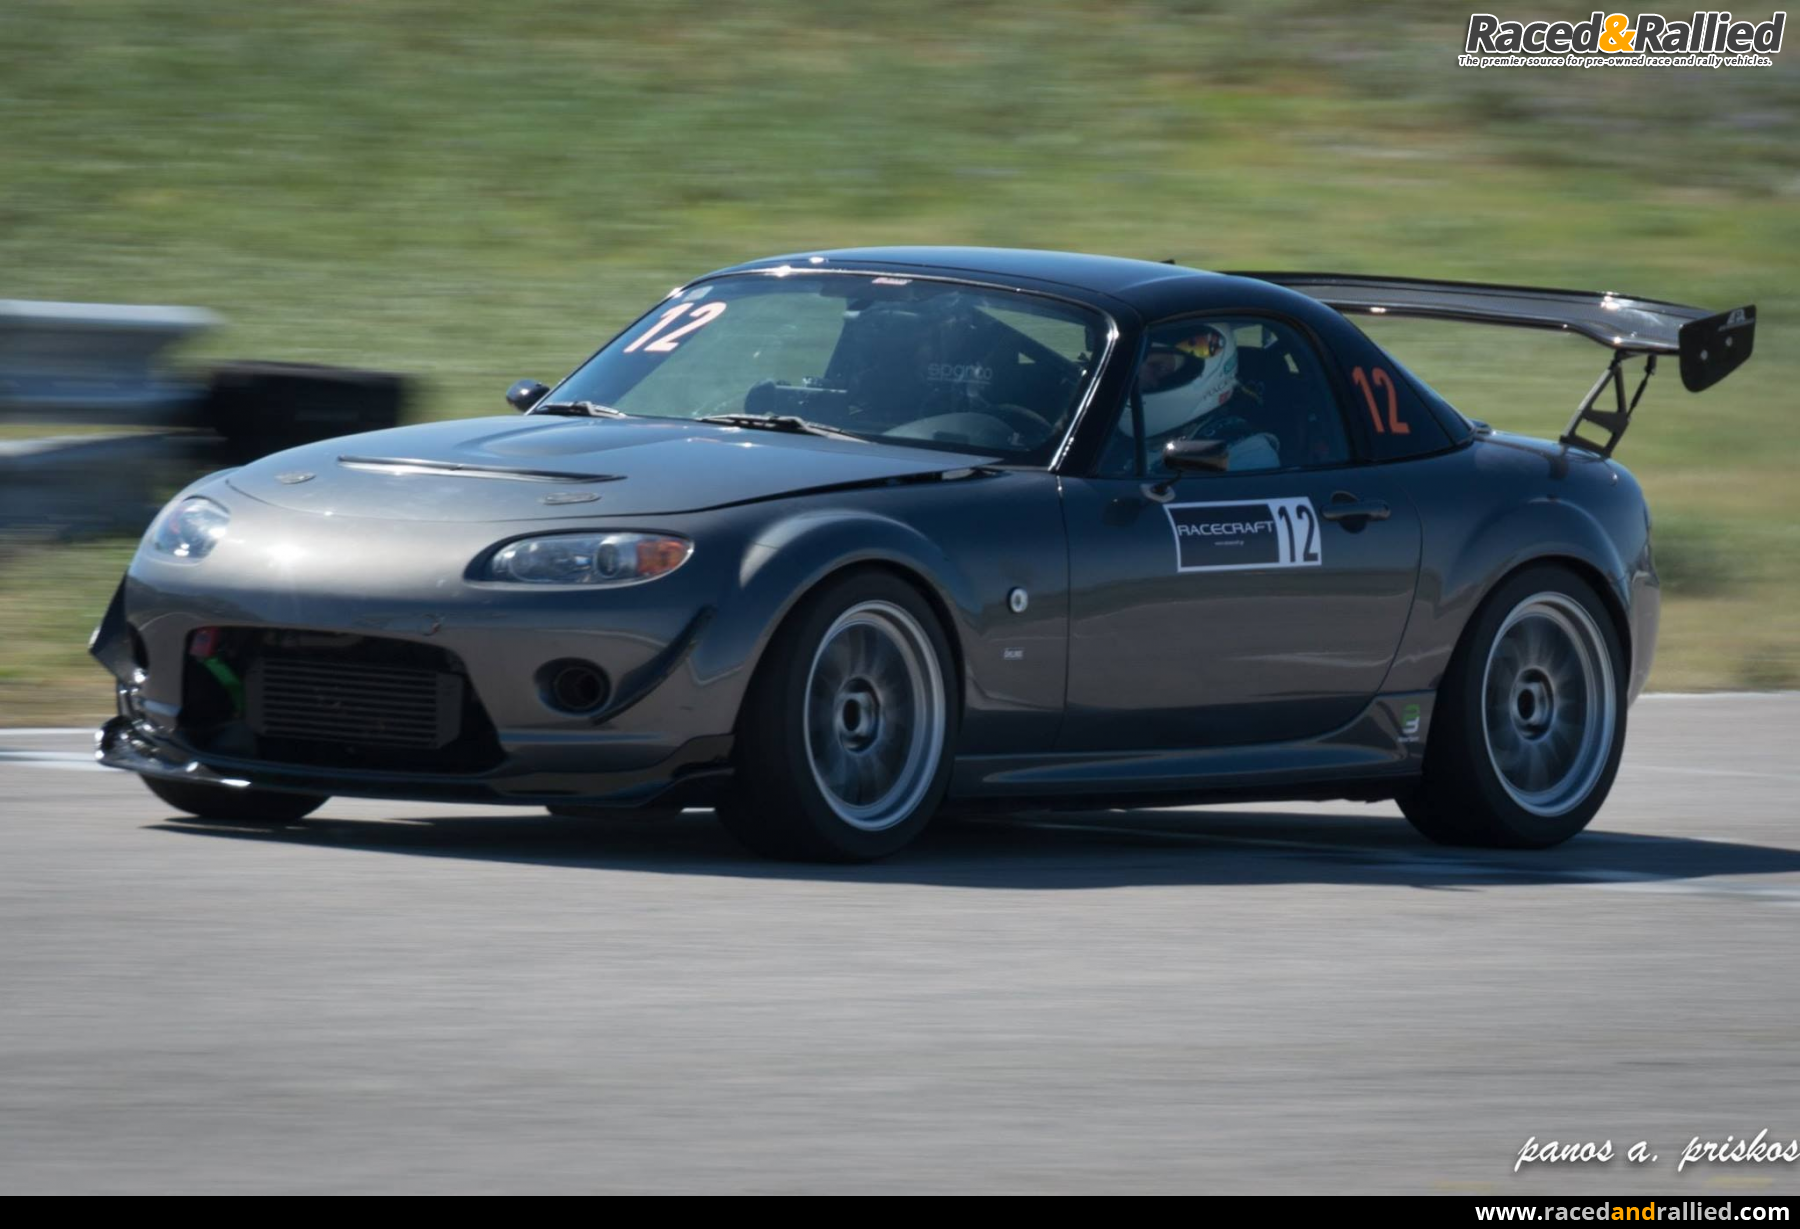 Cobra Kit Car >> Mazda MX5 NC 1.8 KW Rotrex | Performance & Trackday Cars for sale at Raced & Rallied | rally ...